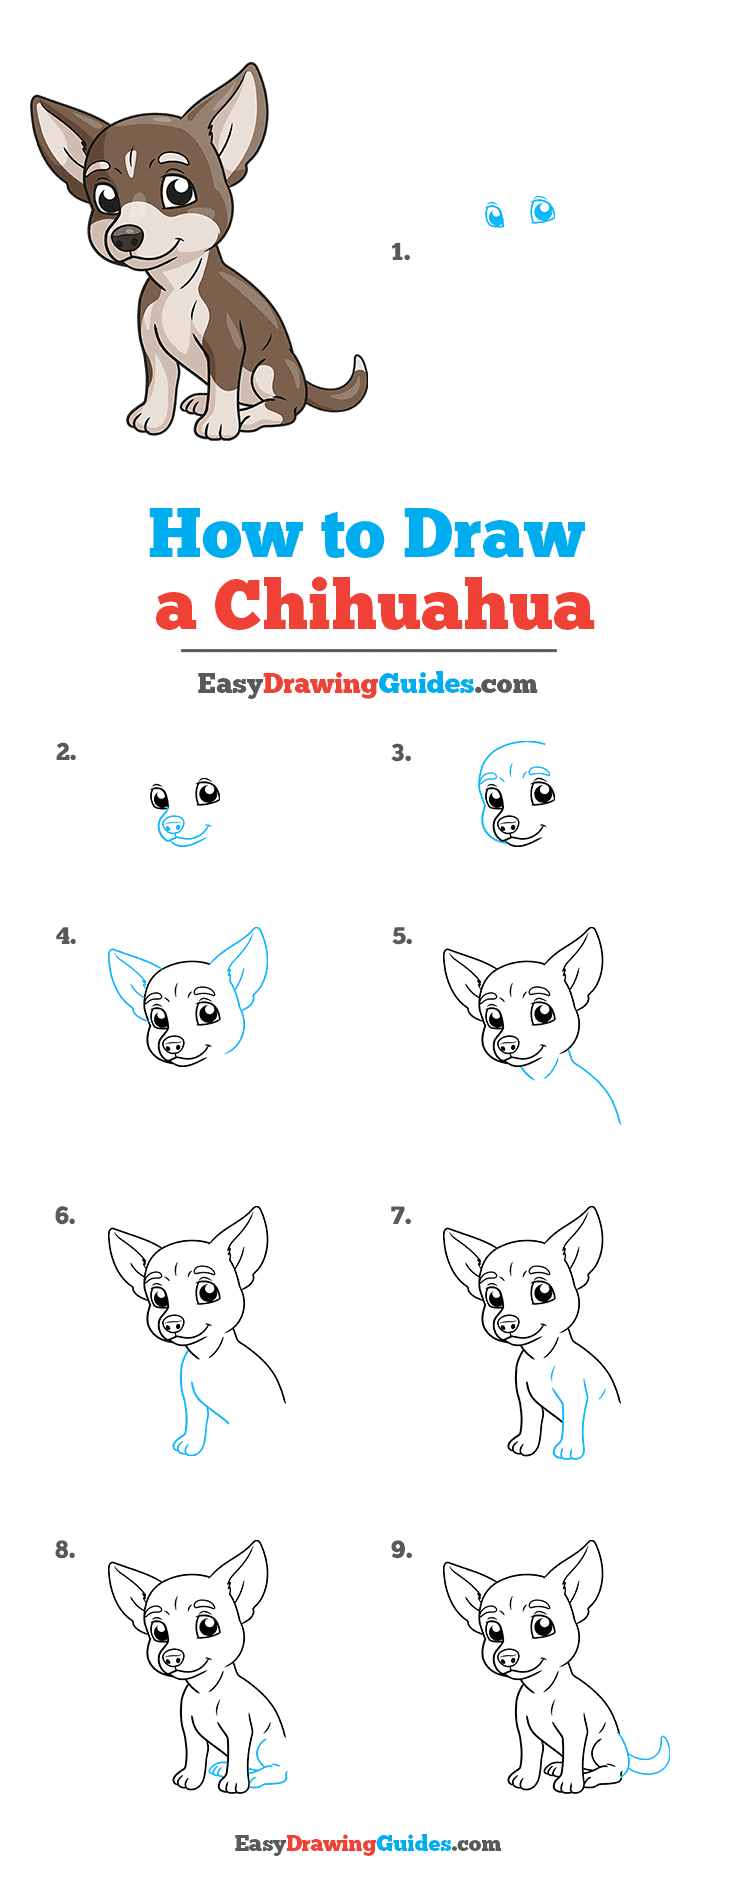 How to Draw Chihuahua